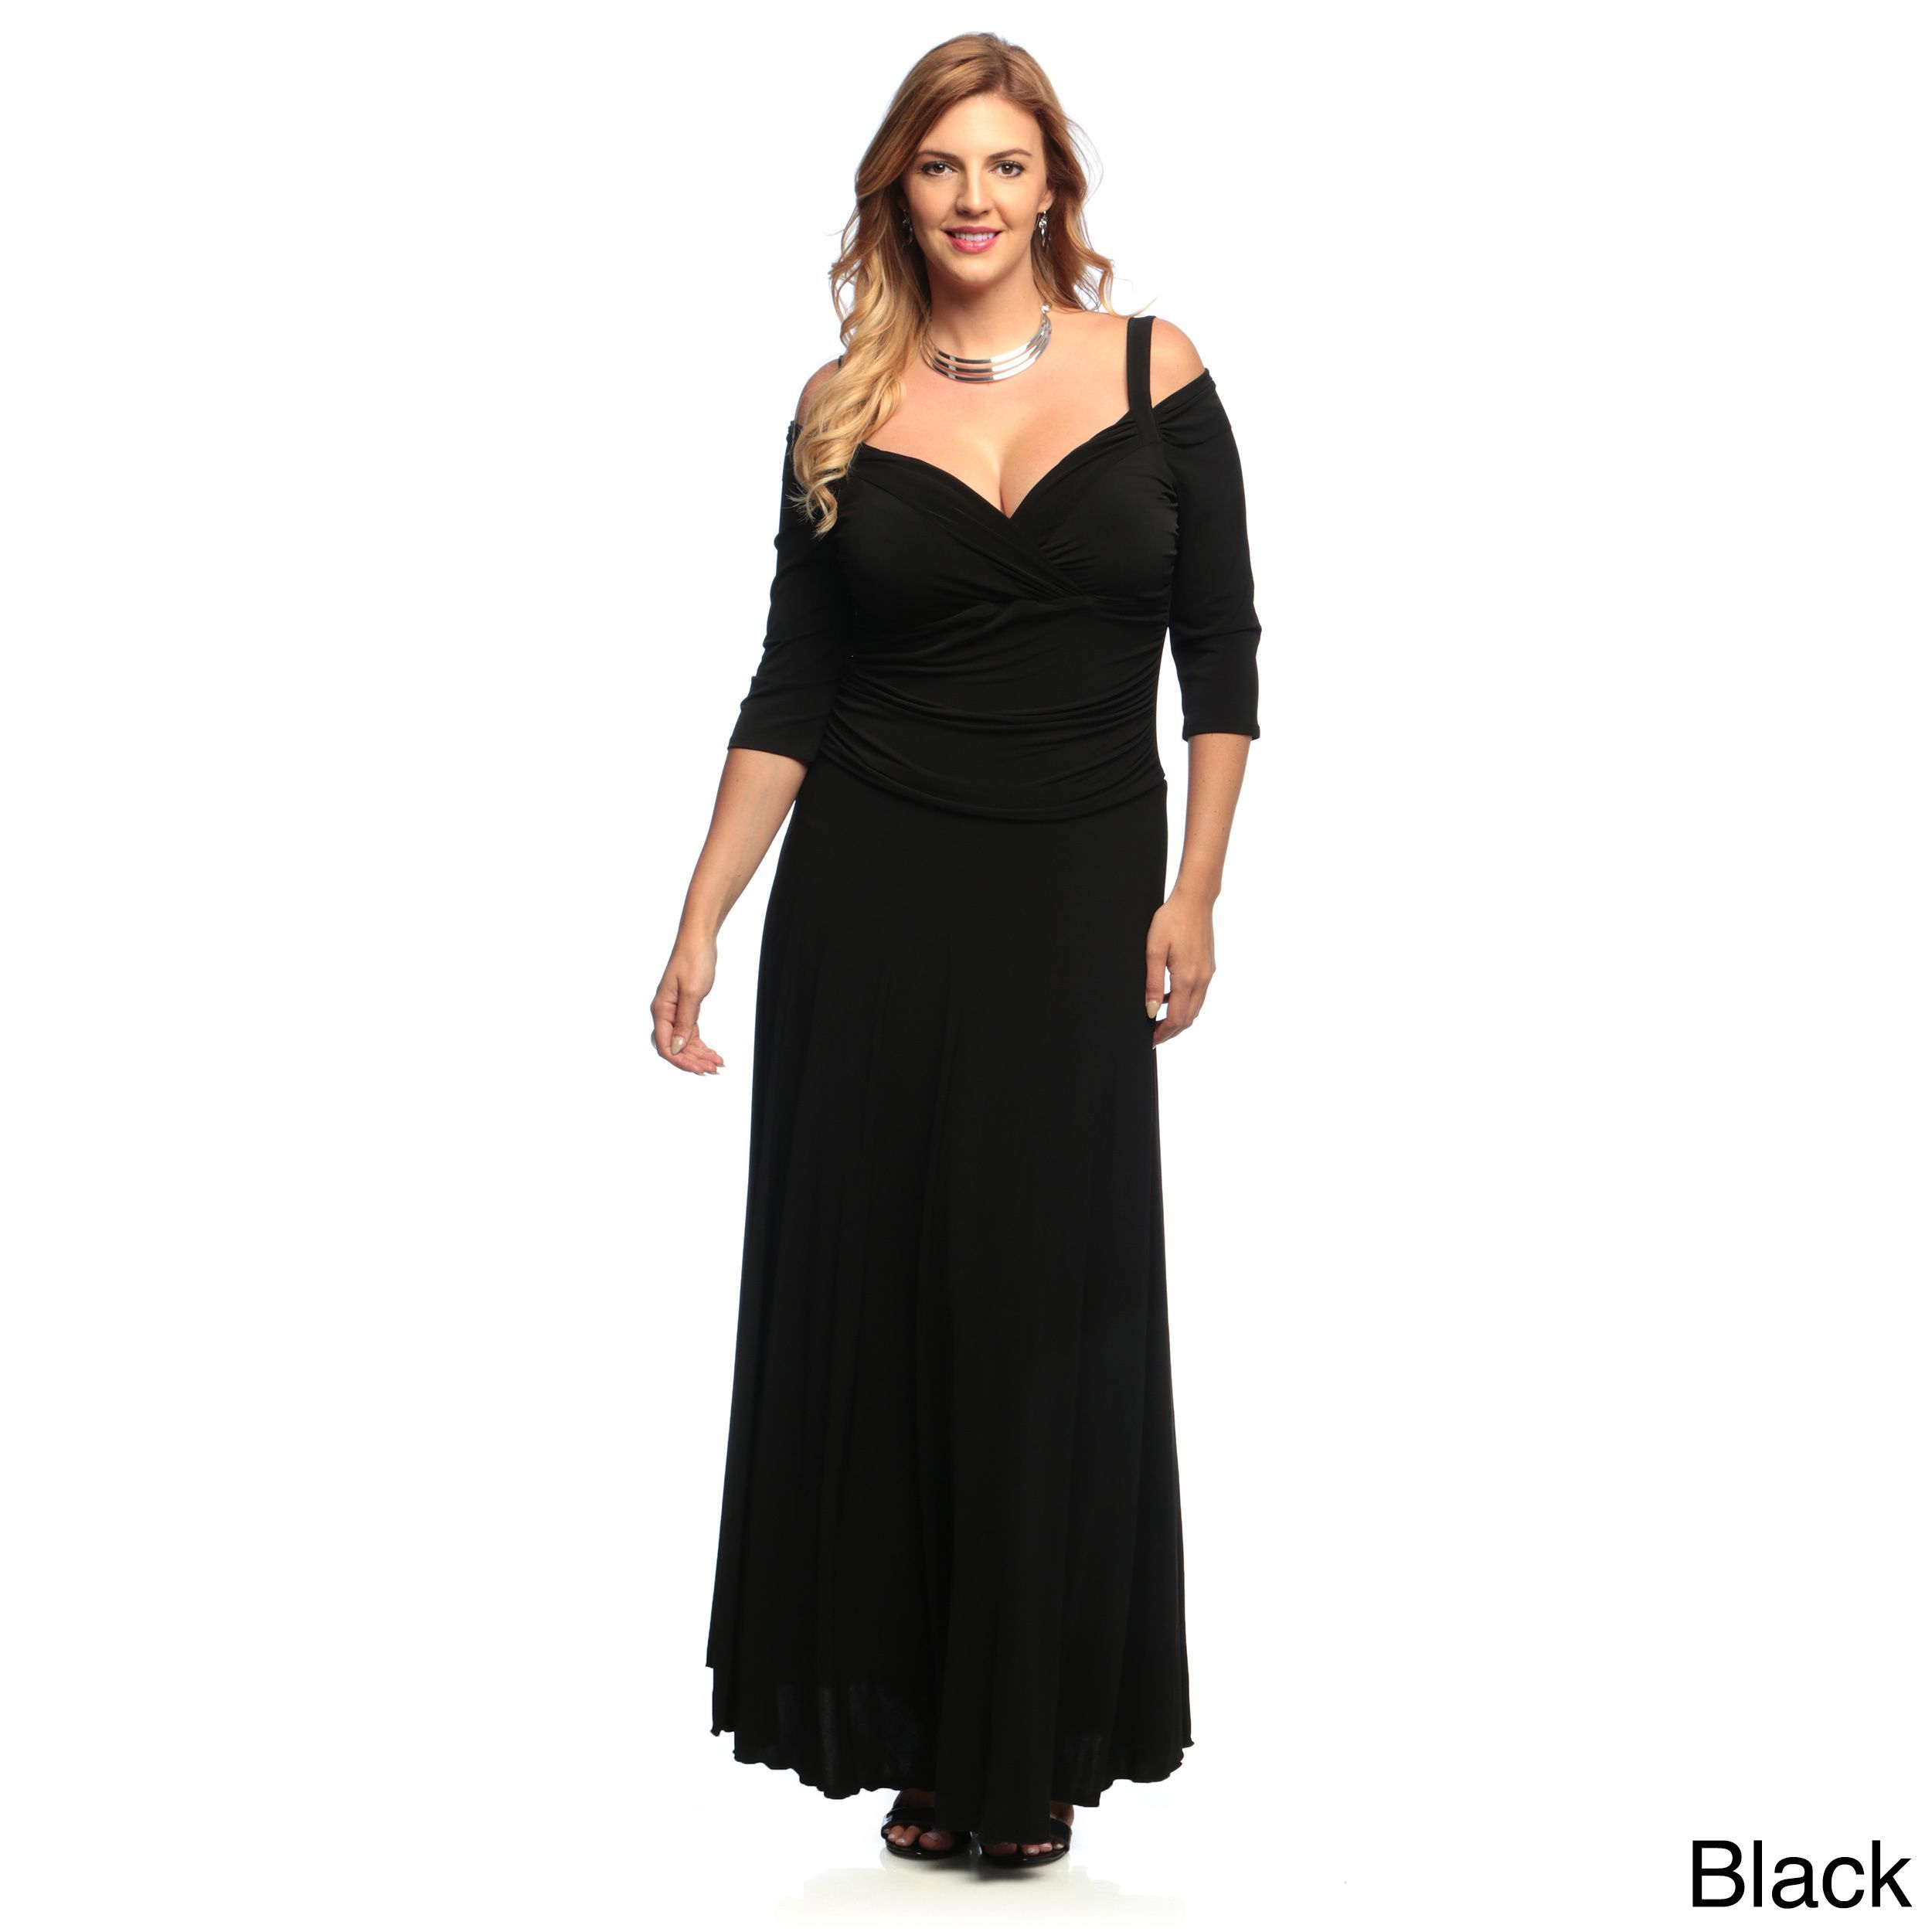 Black long sleeve wedding dresses  Evanese Womenus Plus Size sleeve Long Dress  Products